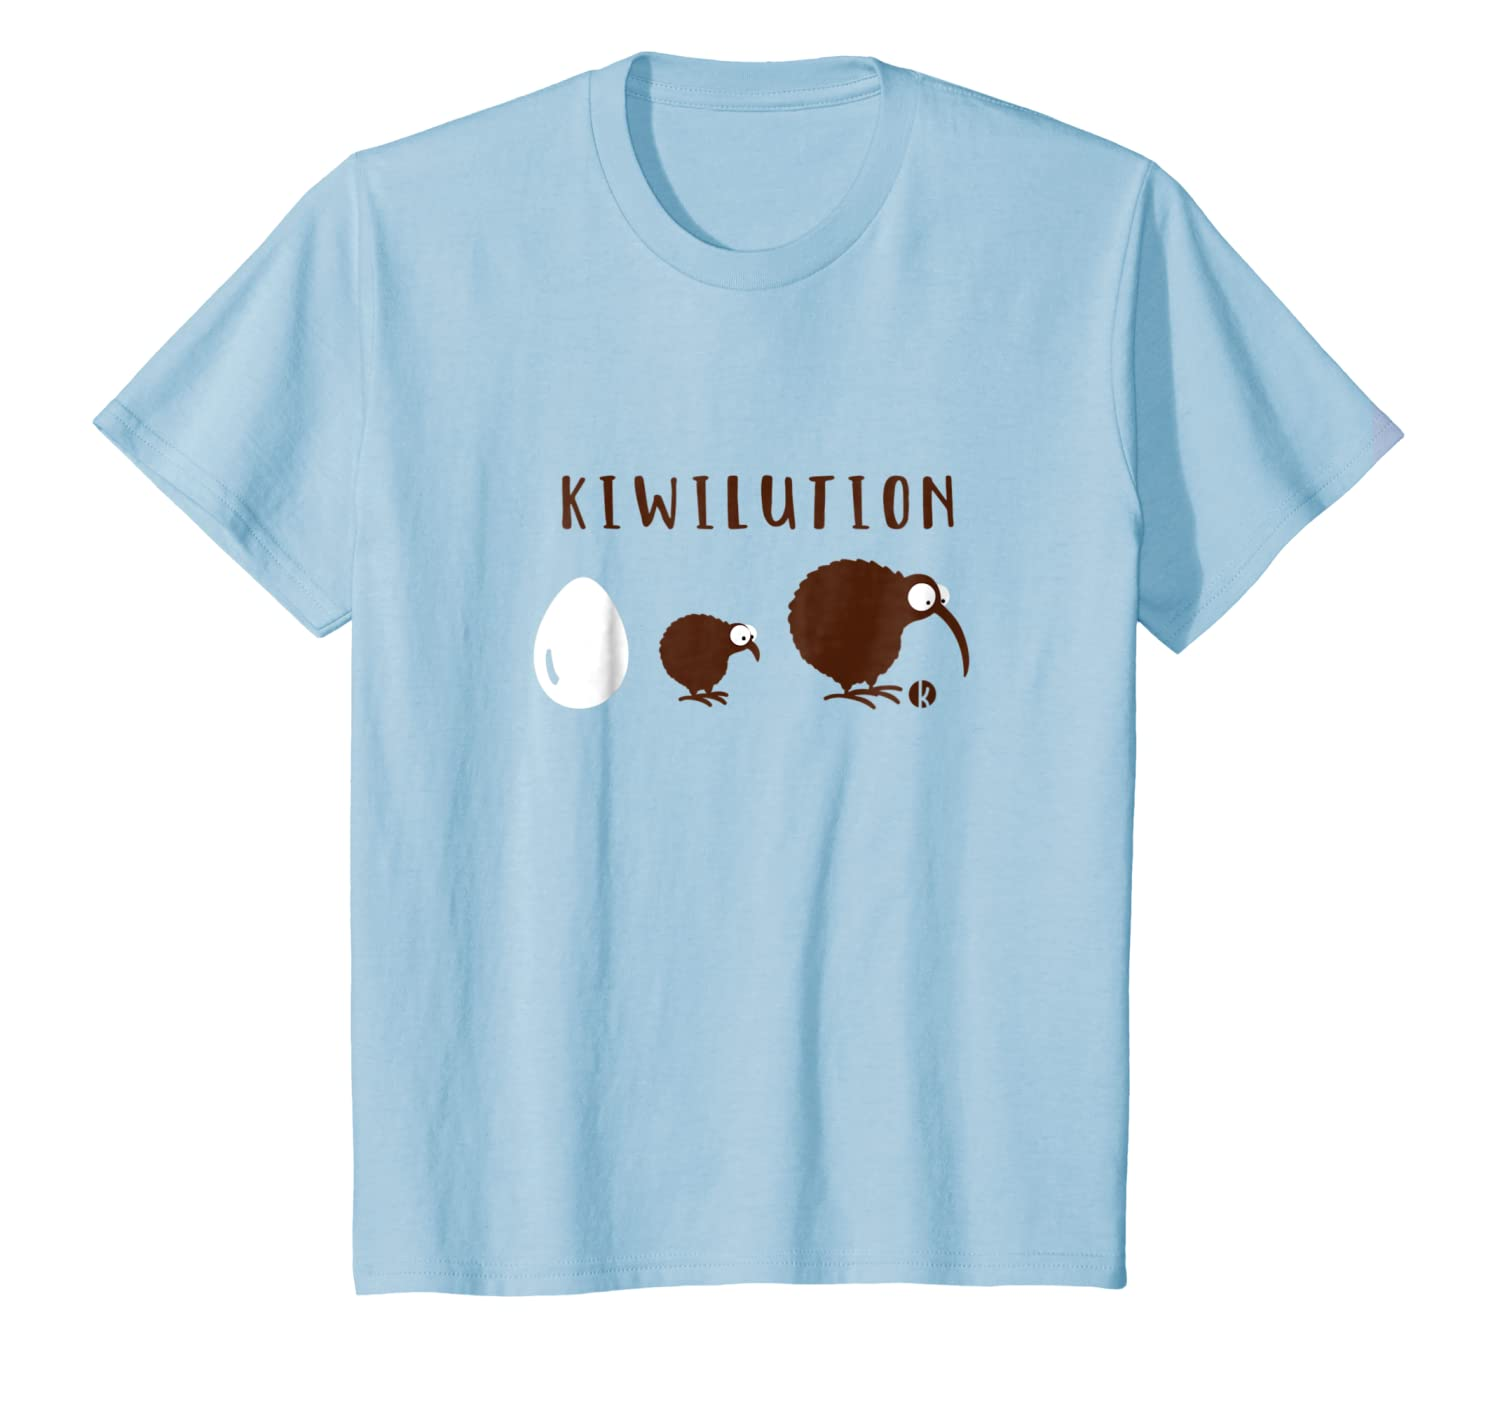 From Egg to Kiwi Bird T-Shirt Kiwilution Evolution of Kiwi